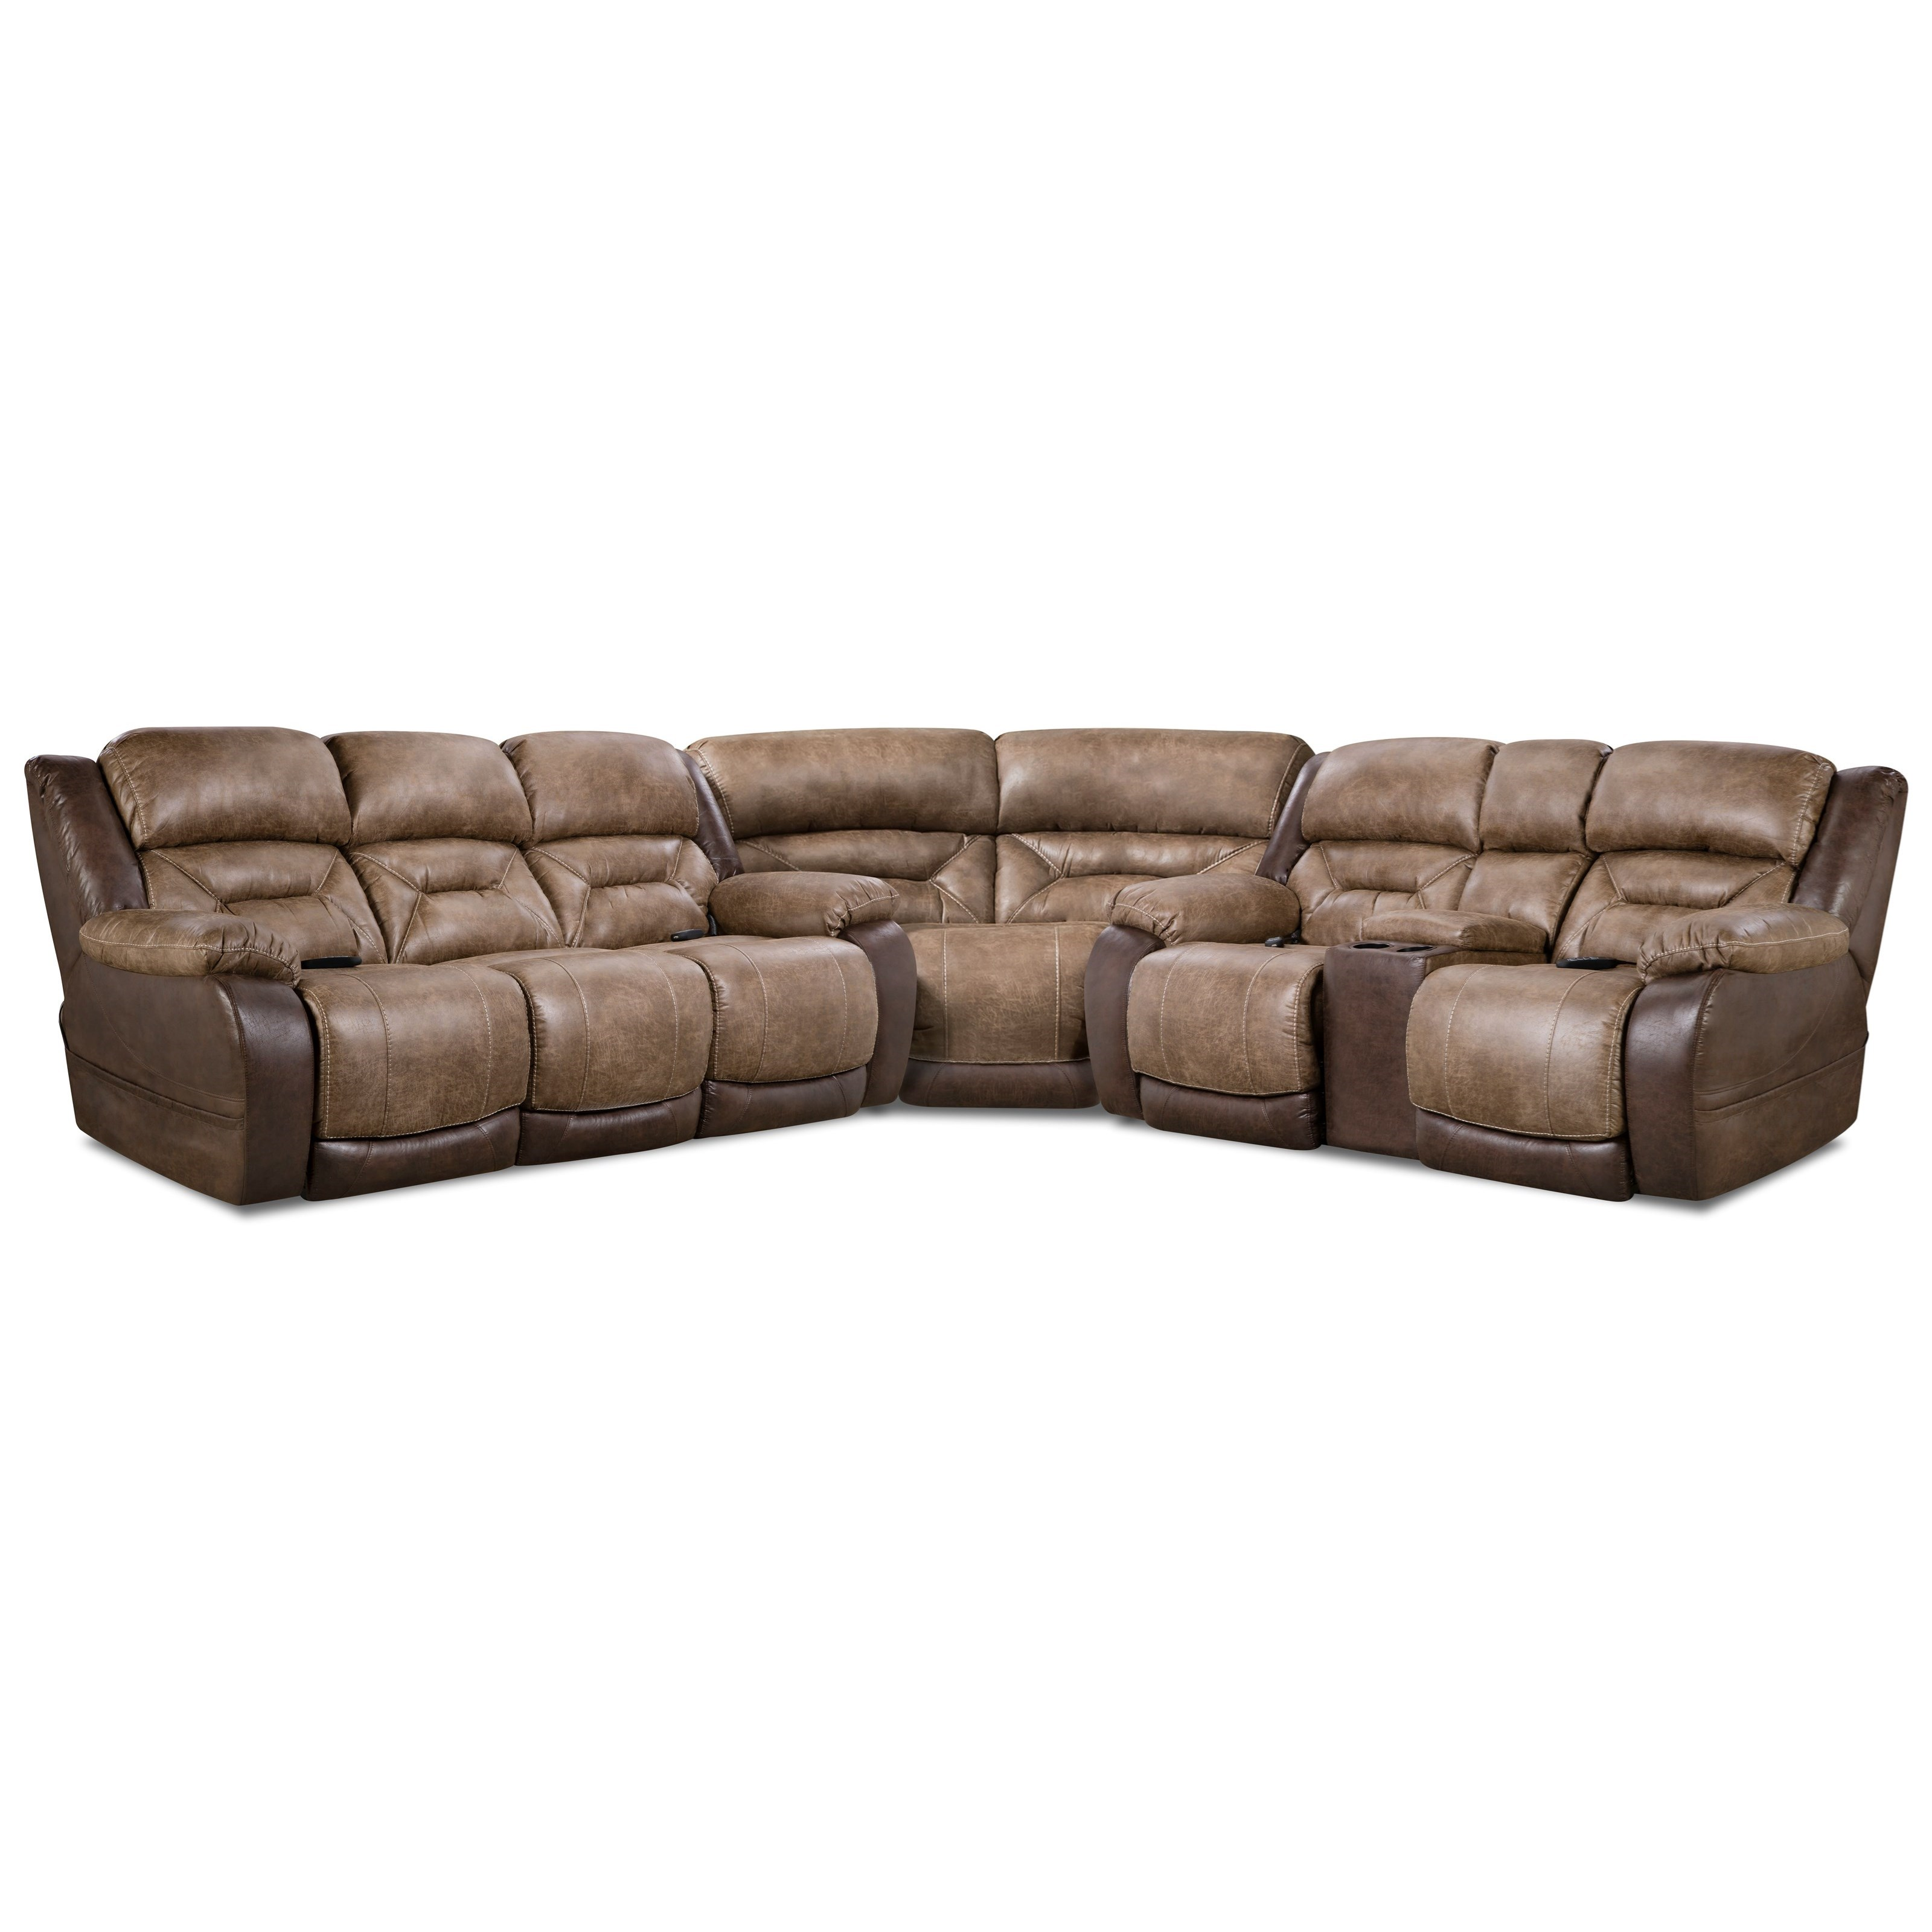 168 Collection Power Reclining Sectional by HomeStretch at Bullard Furniture